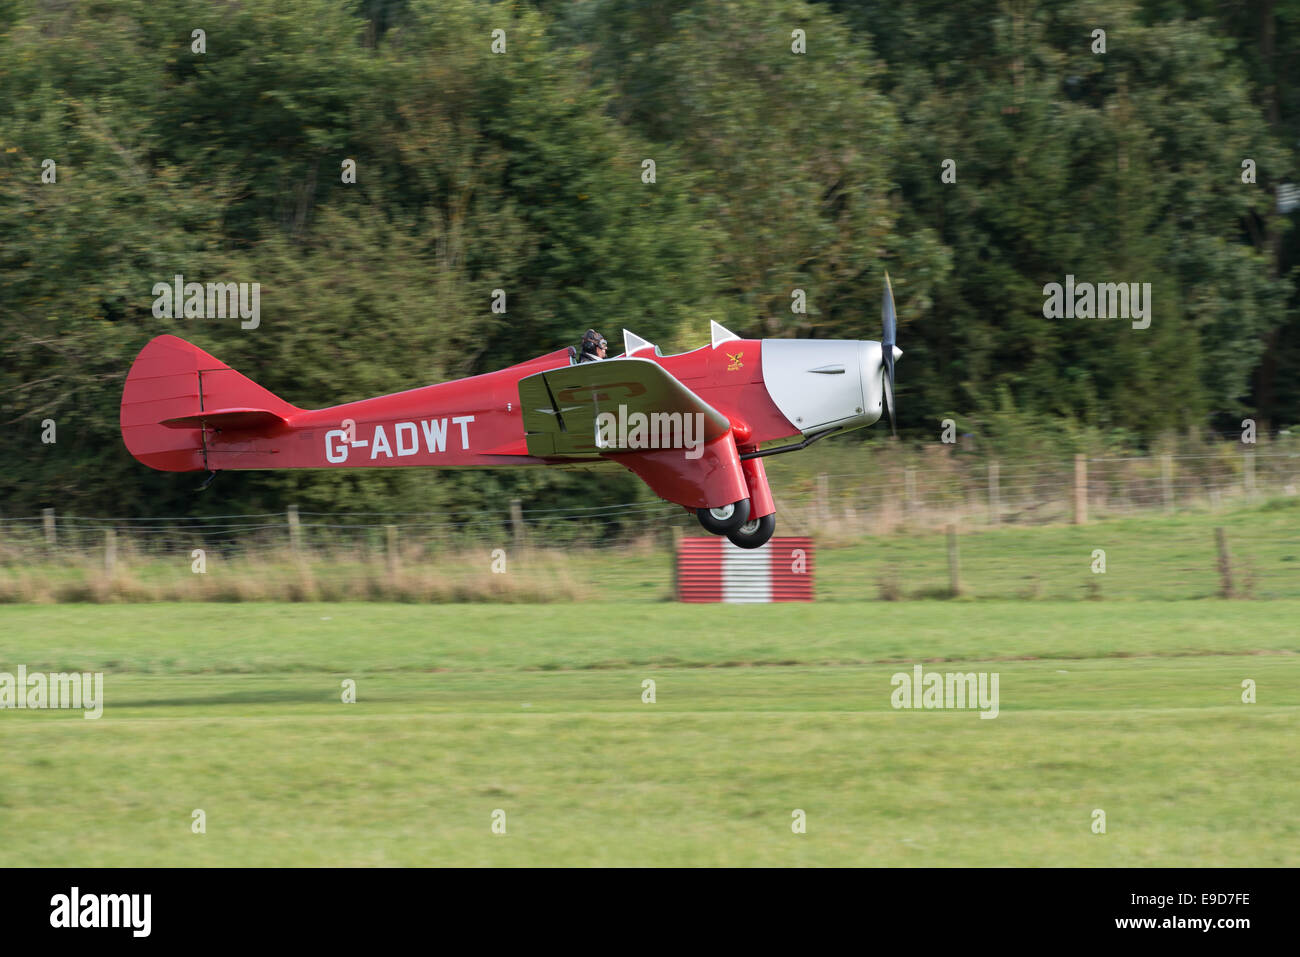 Biggleswade UK - 5th October, 2014: Miles Hawk vintage aircraft at the Shuttleworth Collection airshow - Stock Image